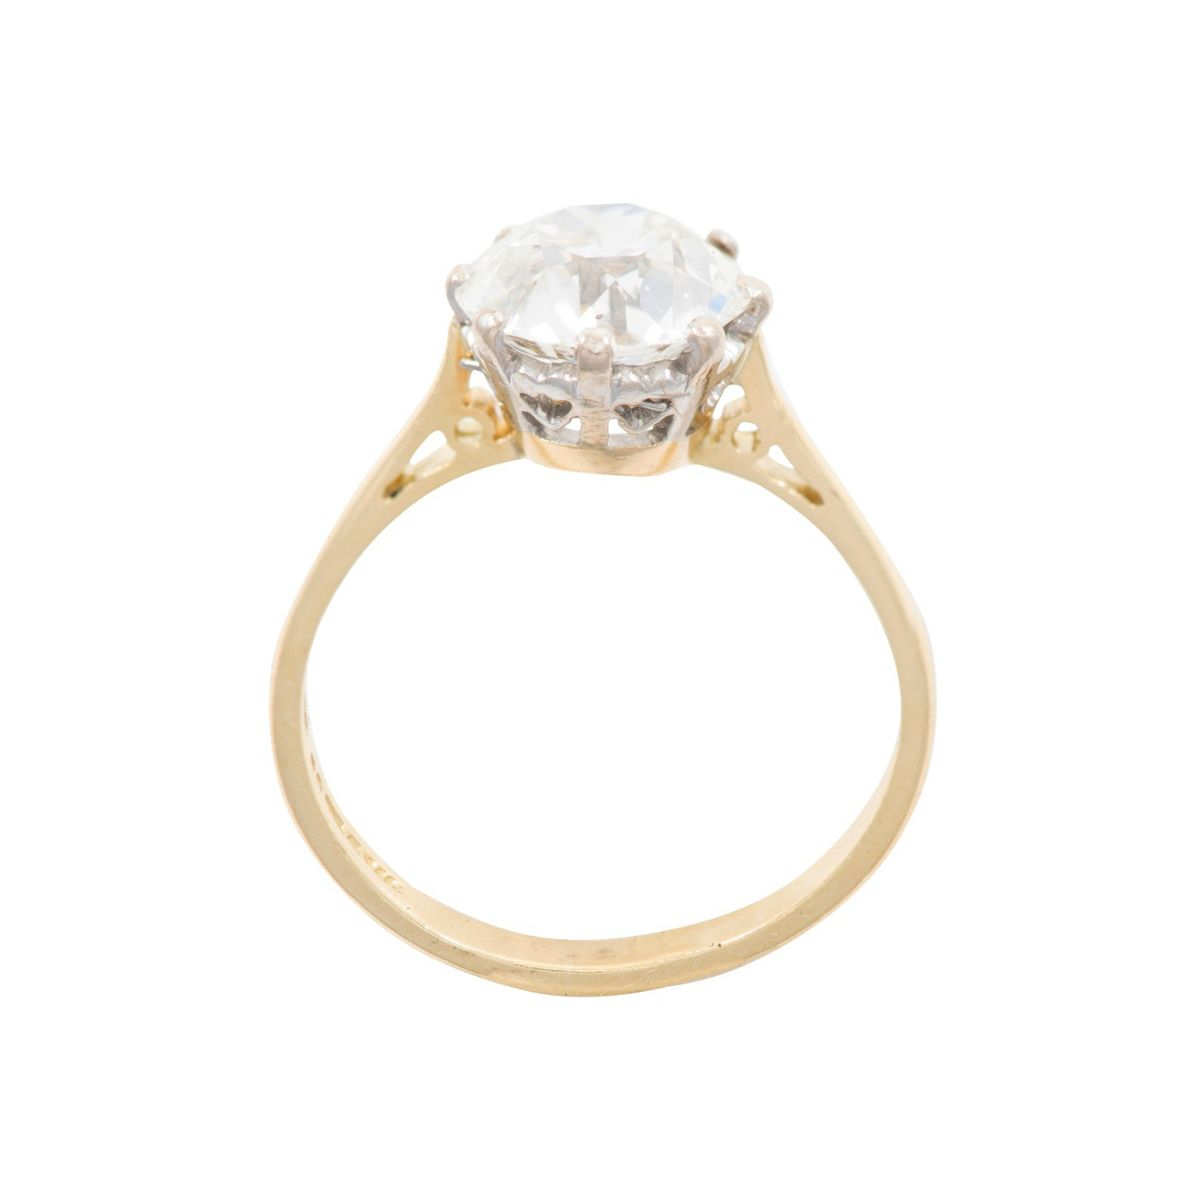 18ct Yellow Gold 2.65ct Diamond Solitaire Ladies Ring Size N